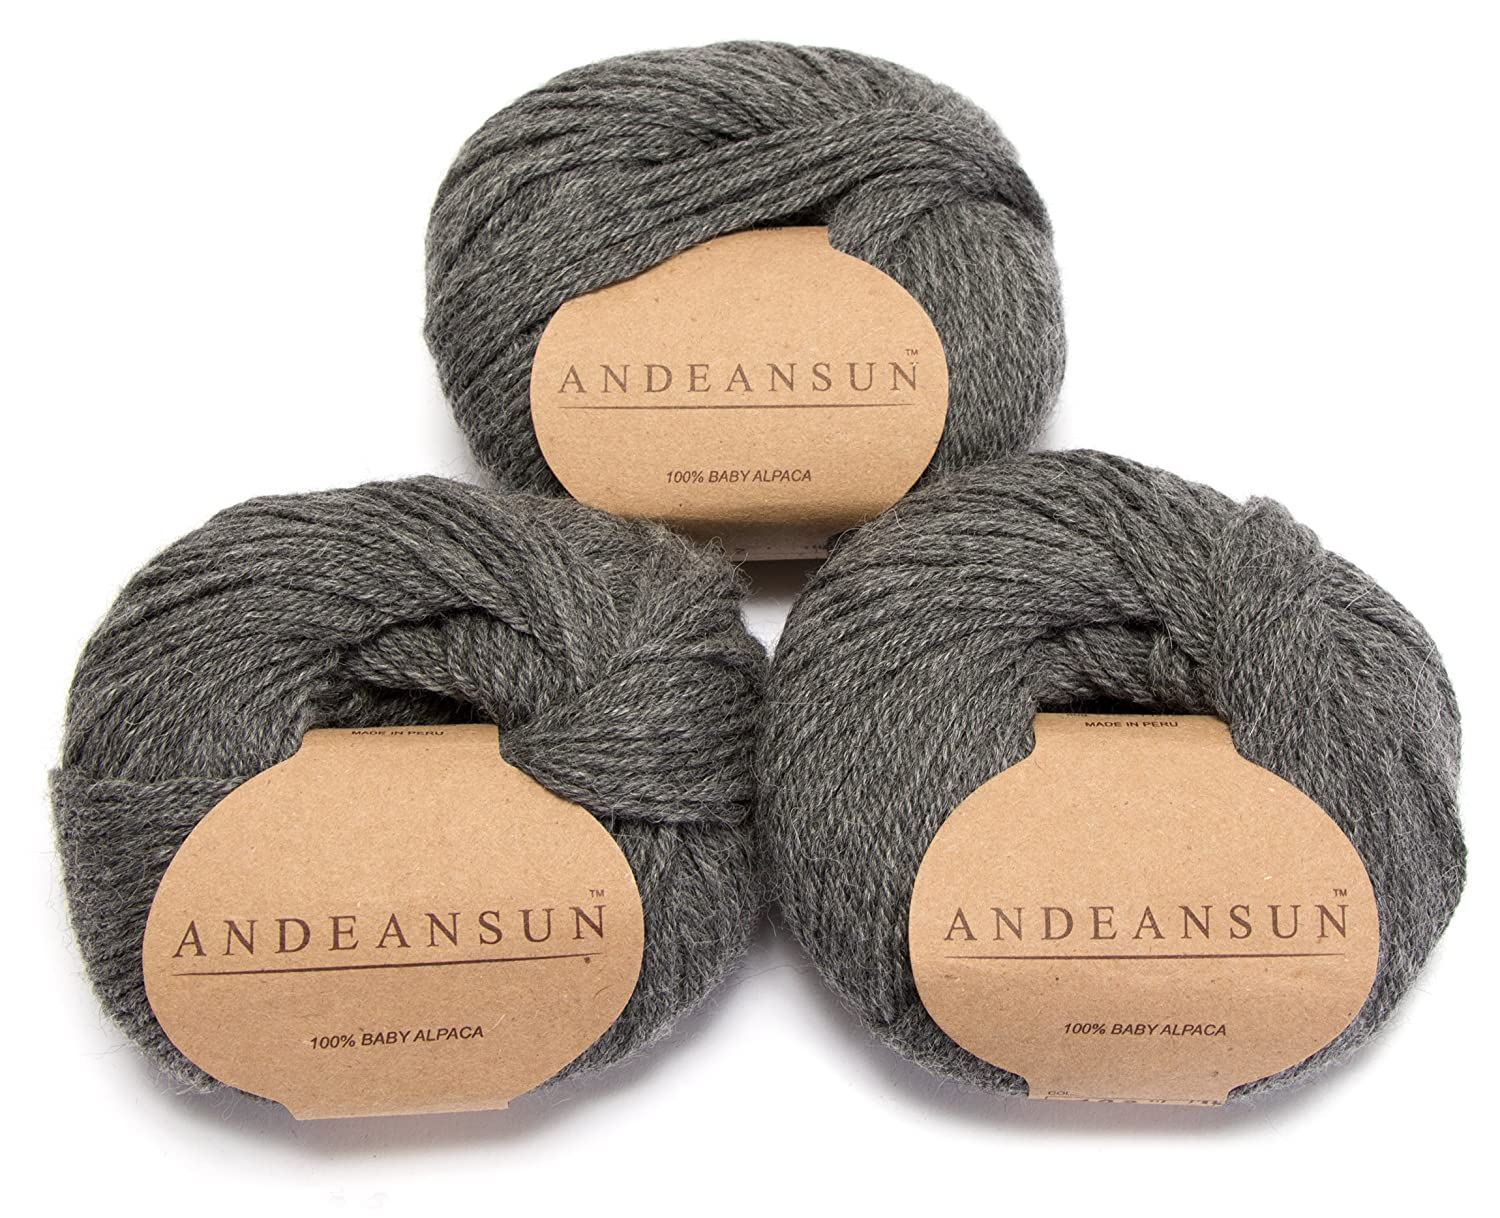 100% Baby Alpaca Yarn Skeins - Set of 3 (Medium Gray) - AndeanSun - Luxuriously soft for knitting, crocheting - Great for baby garments, scarves, hats, and craft projects Ð MEDIUM GRAY